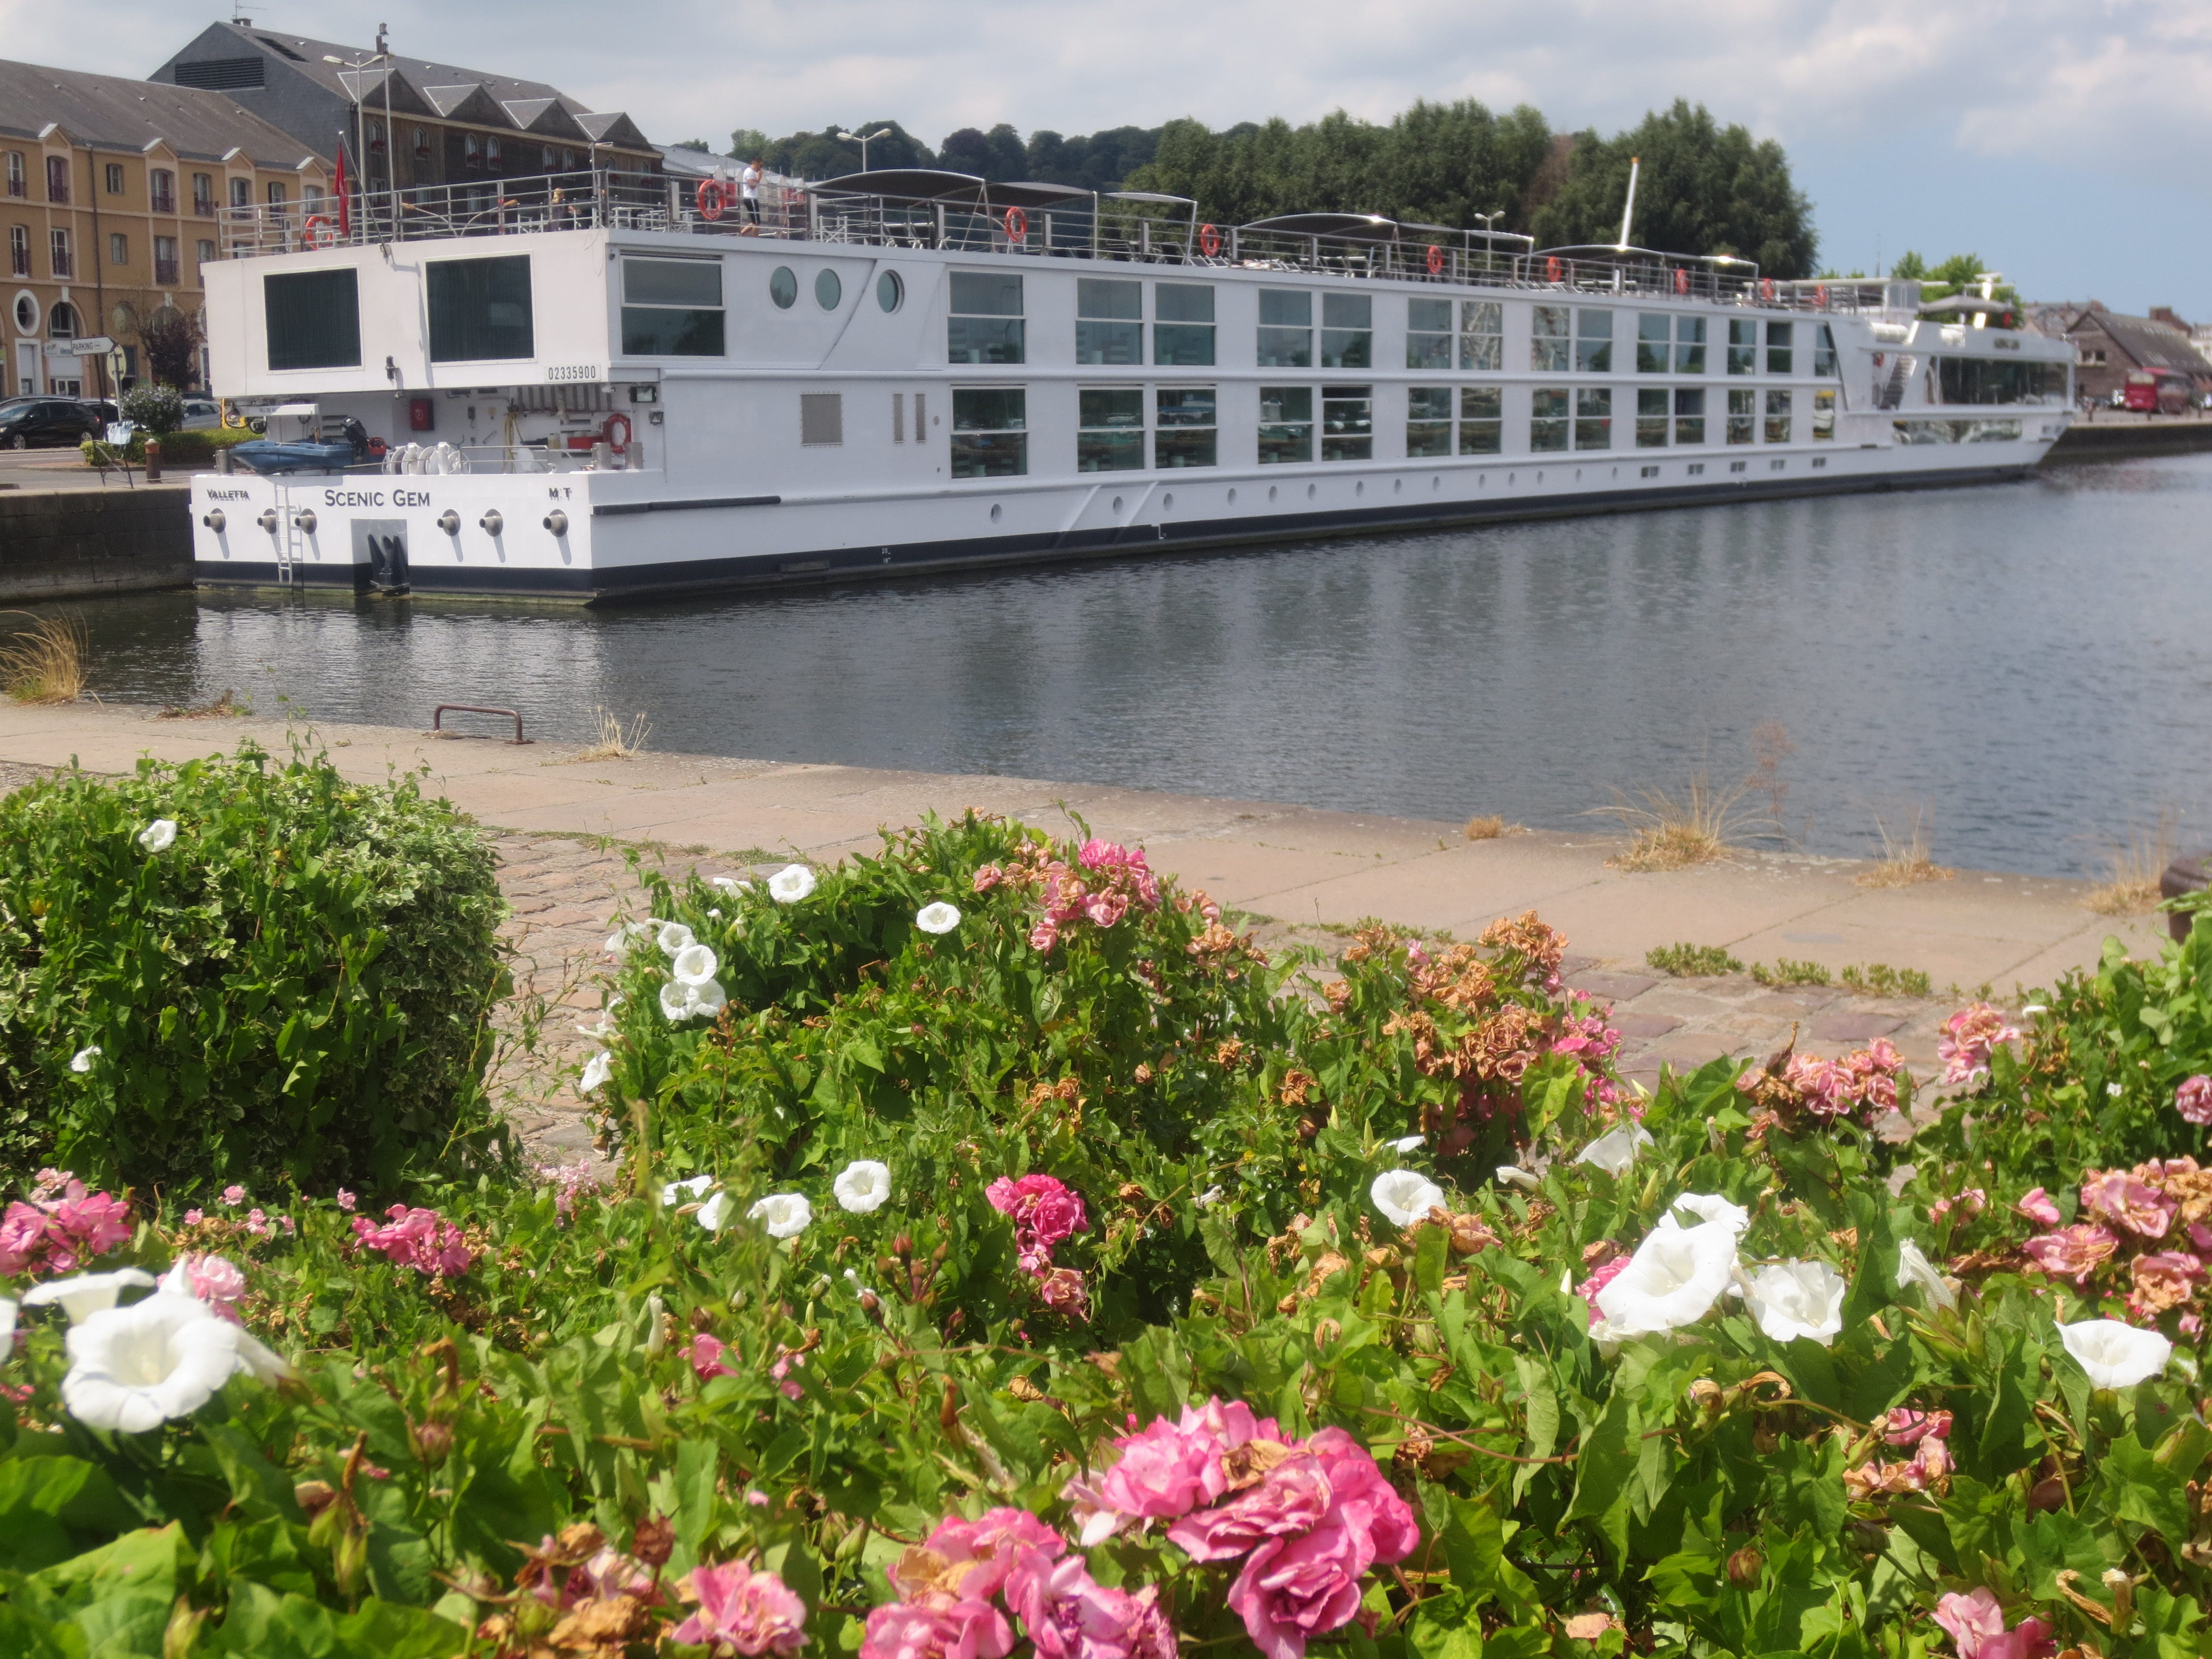 The Scenic Gem docked on the Seine River in Honfleur, France.